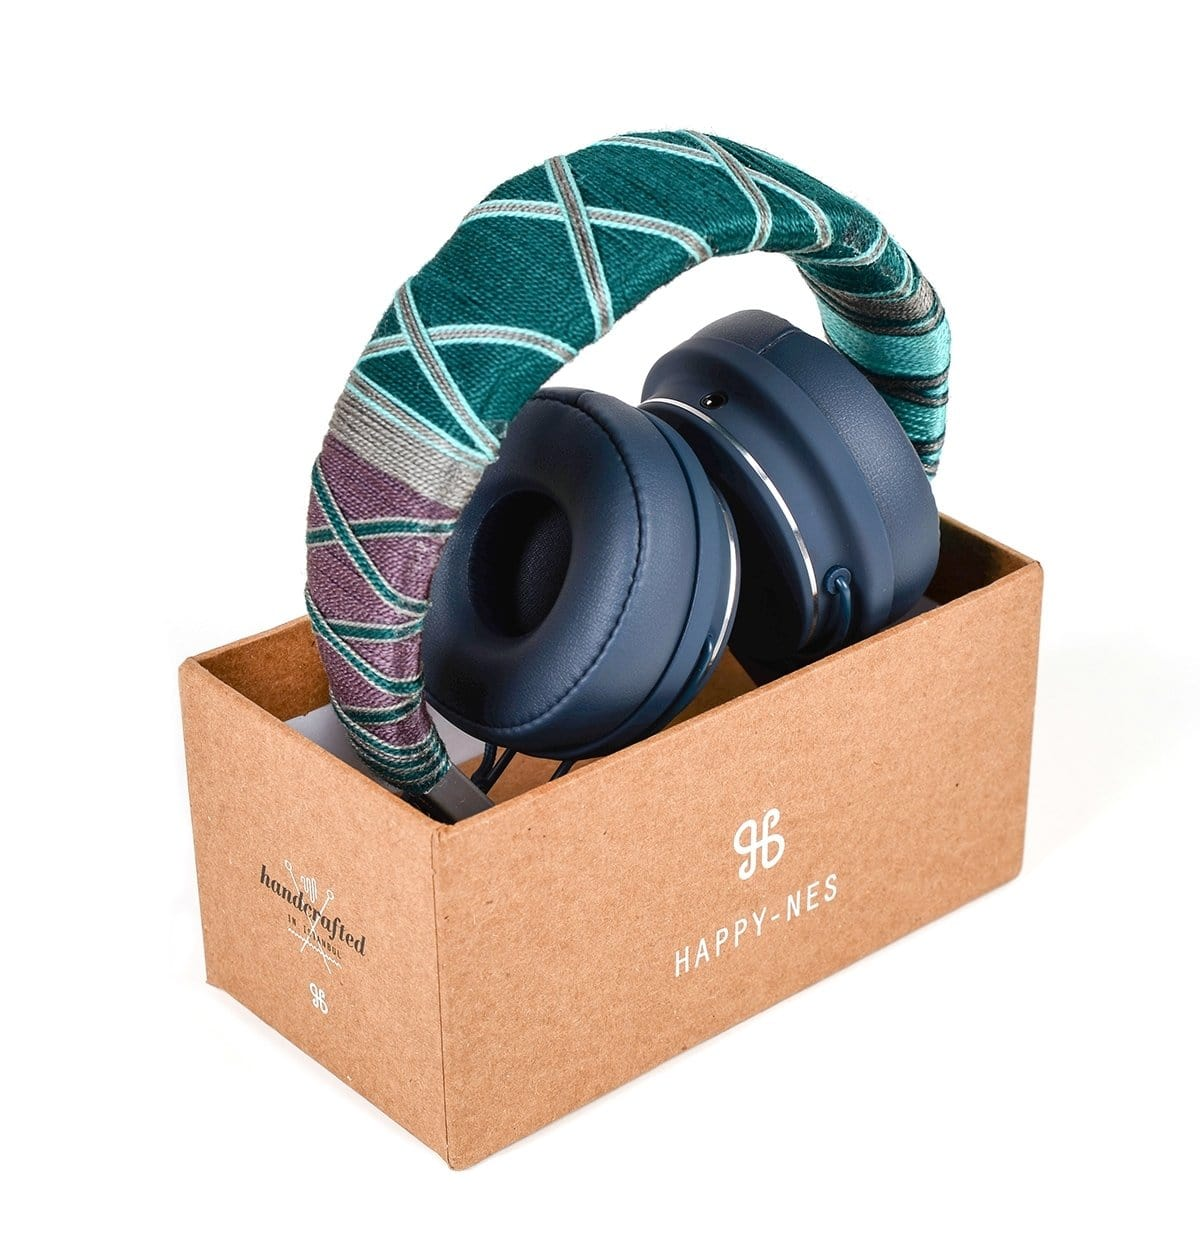 Green Happy-Nes headphone in box handcrafted on New Urbanears Plattan 2